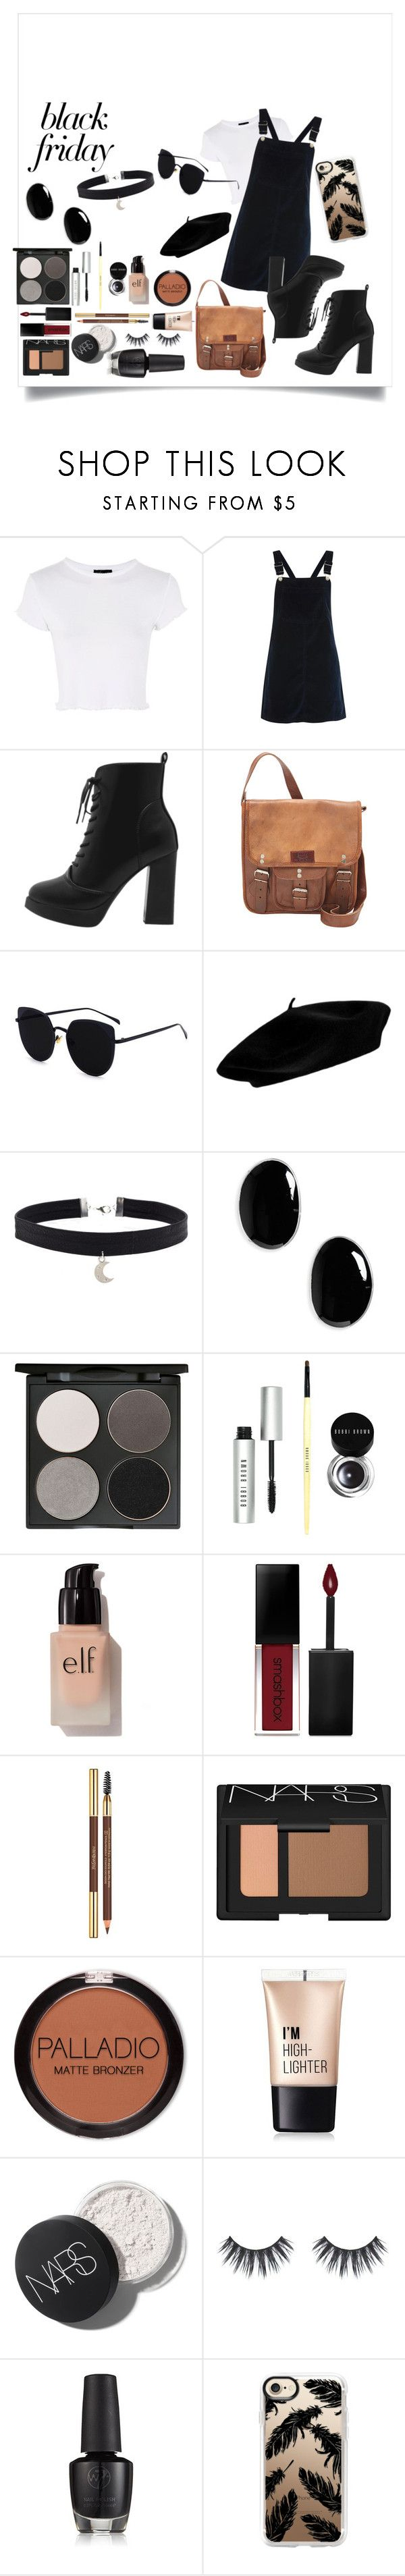 """""""Eclipse"""" by fruitsalad865 ❤ liked on Polyvore featuring Topshop, SHARO, Sophie Buhai, Gorgeous Cosmetics, Bobbi Brown Cosmetics, e.l.f., Smashbox, Yves Saint Laurent, NARS Cosmetics and Charlotte Russe"""